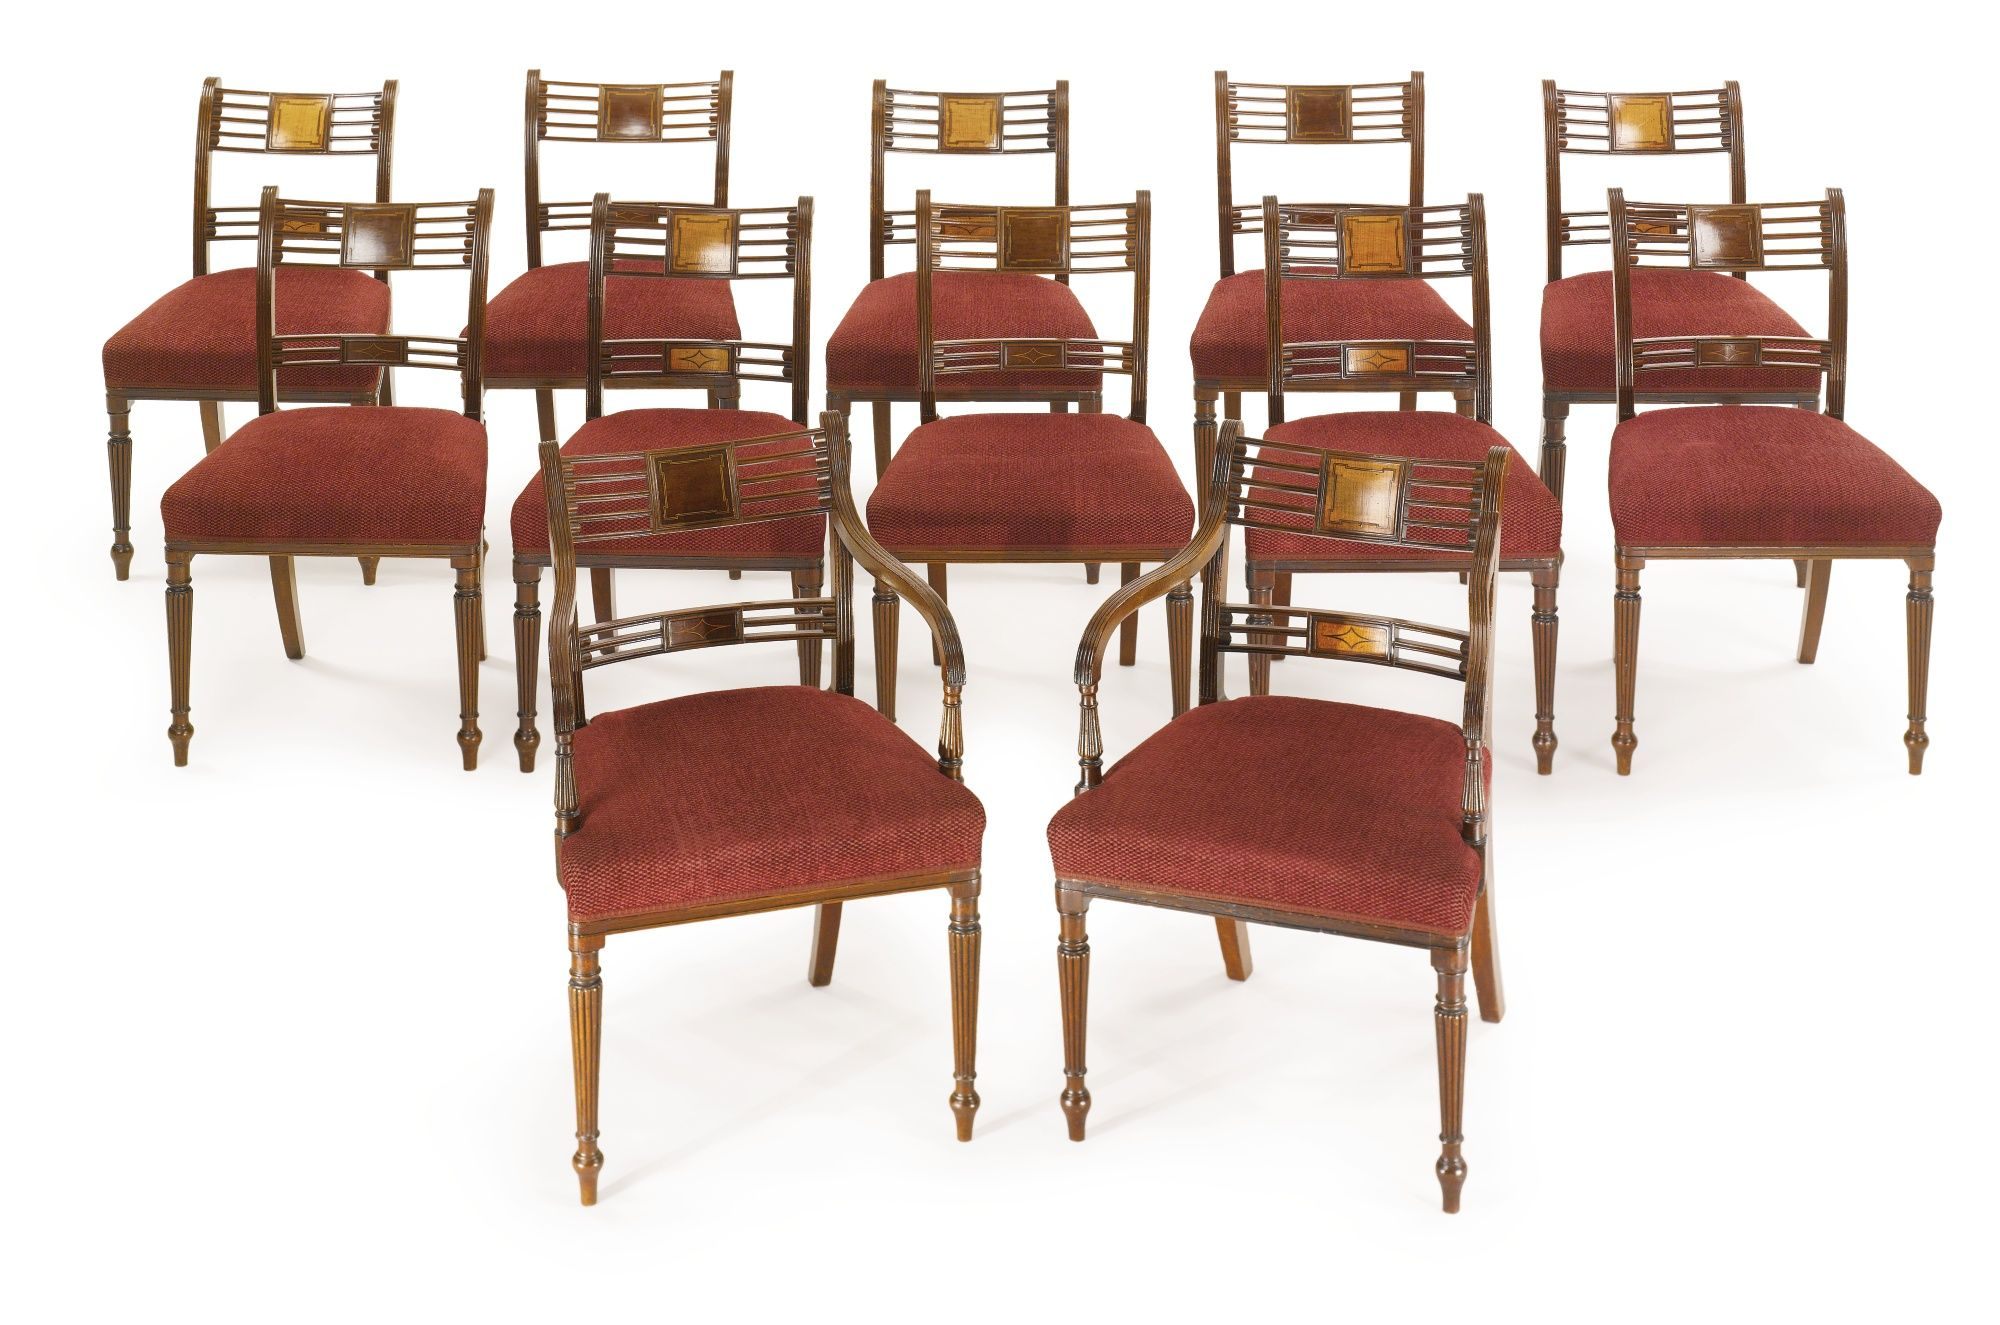 A set of twelve Regency inlaid mahogany and satinwood dining chairs circa 1810